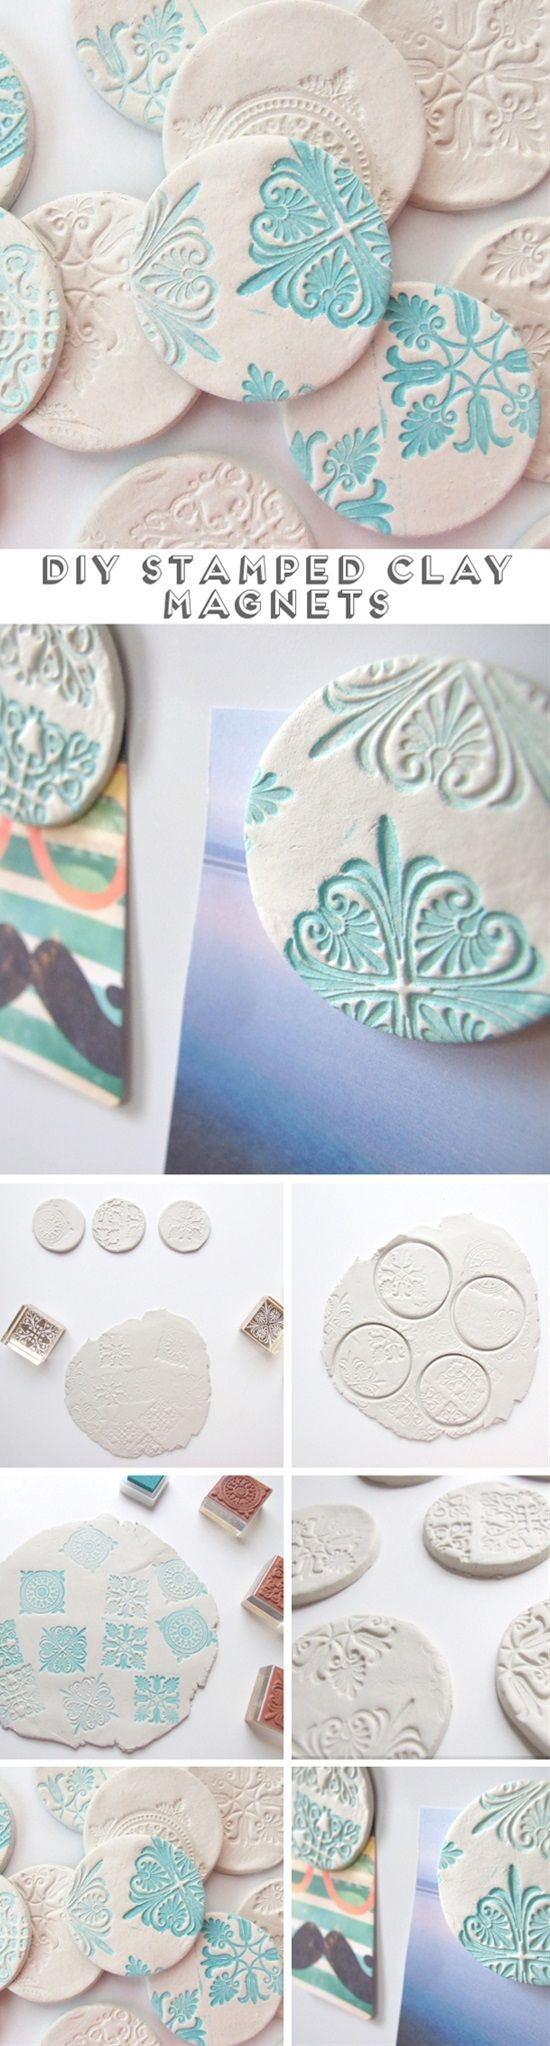 You can't have enough things on your fridge, there's always something needs to be pinned on it. But you don't always have to buy fridge magnets from the store, you can make them yourself. Take a look at these amazing fridge magnets you can create yourself.